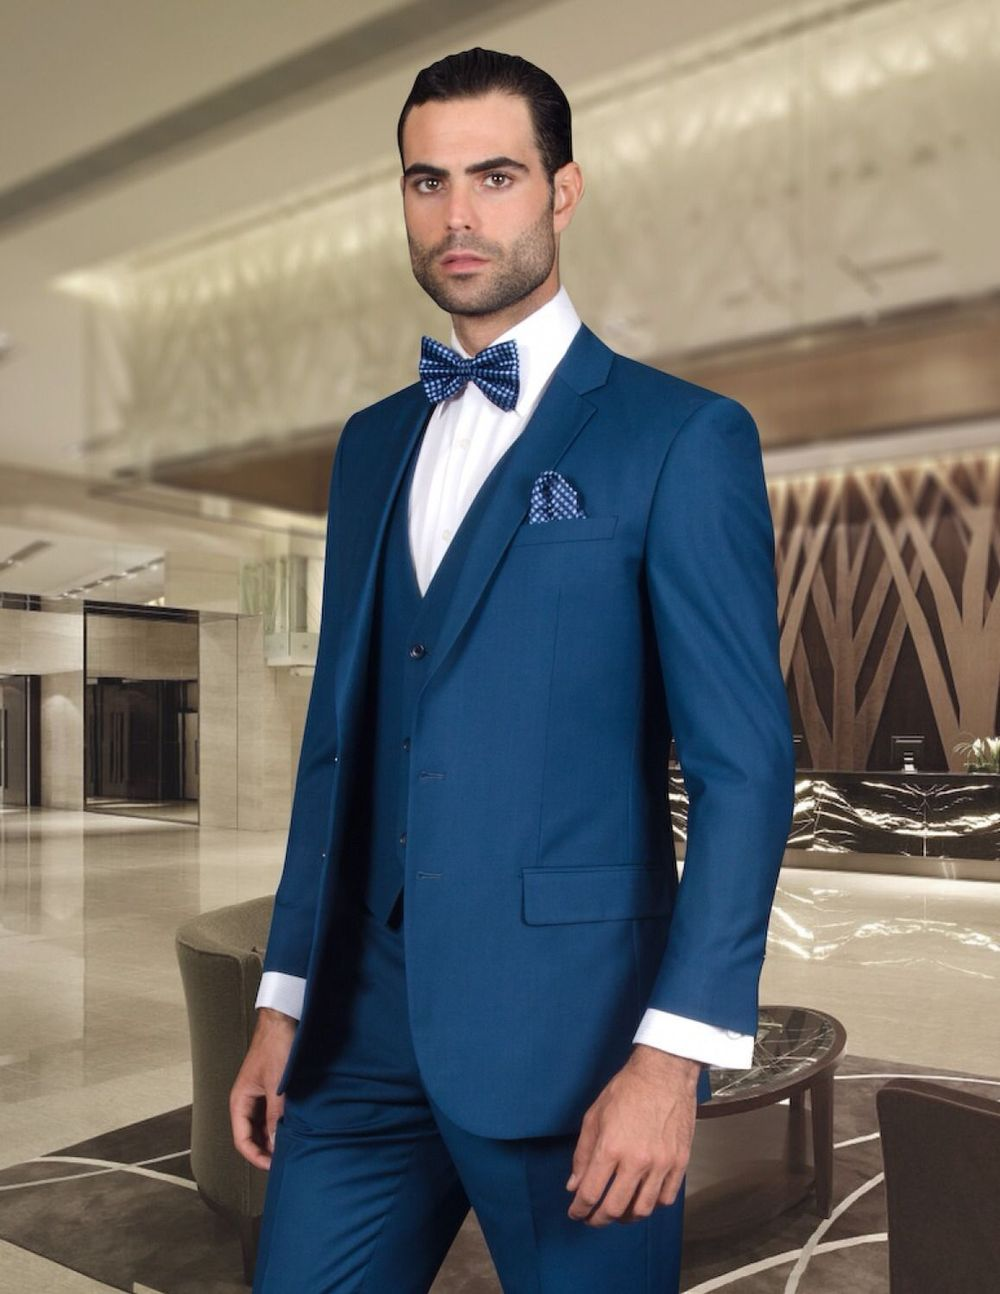 Beach Wool Blend Suits Trim Fit Navy Blue Men Wedding Suit Groom ...